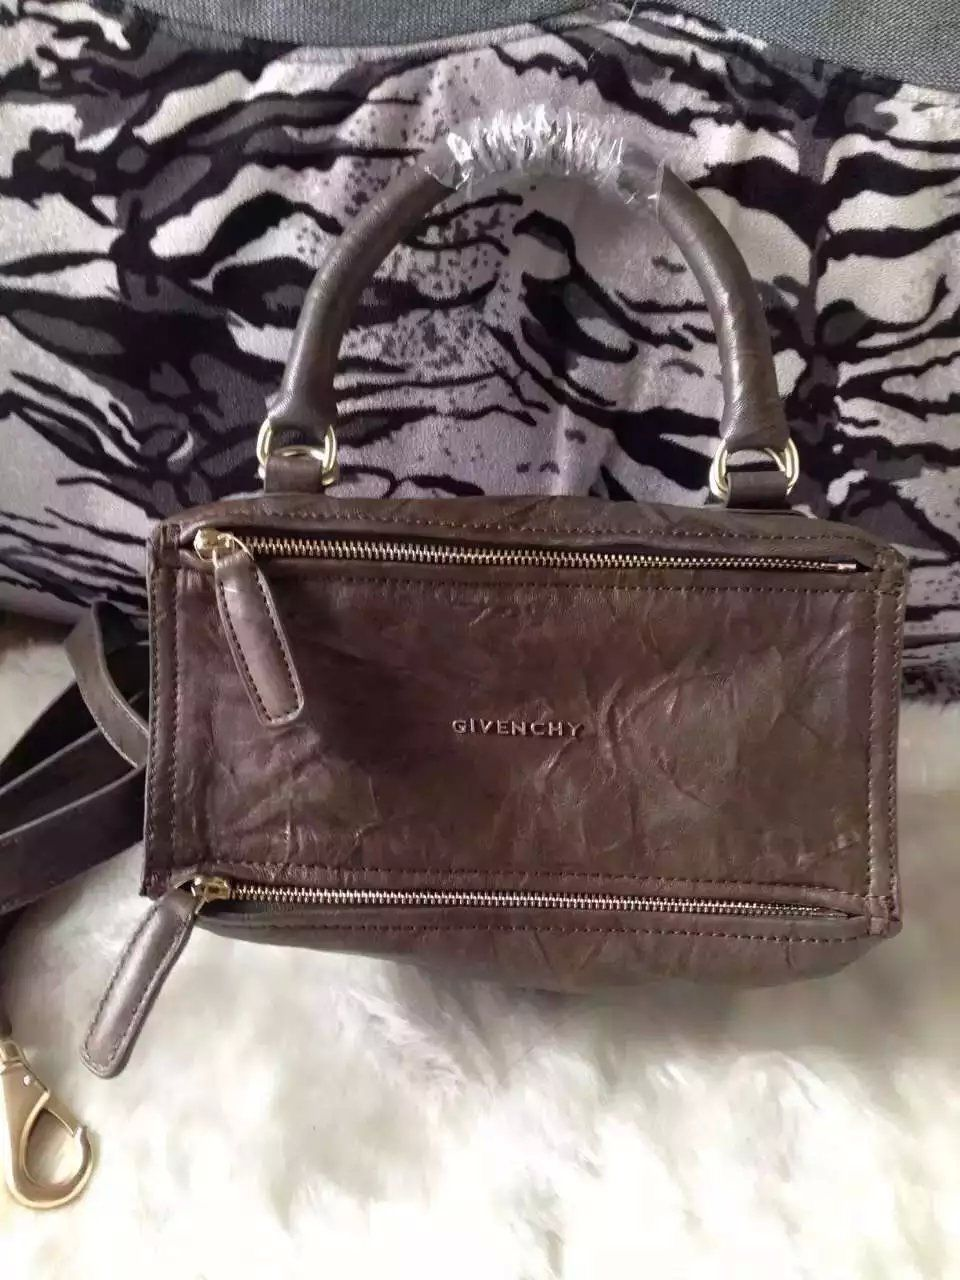 fea3d5f4980 S S 2016 Givenchy Collection Outlet-Givenchy  PANDORA  Small Khaki Pepe  Sheepskin Leather Bag Sale Online